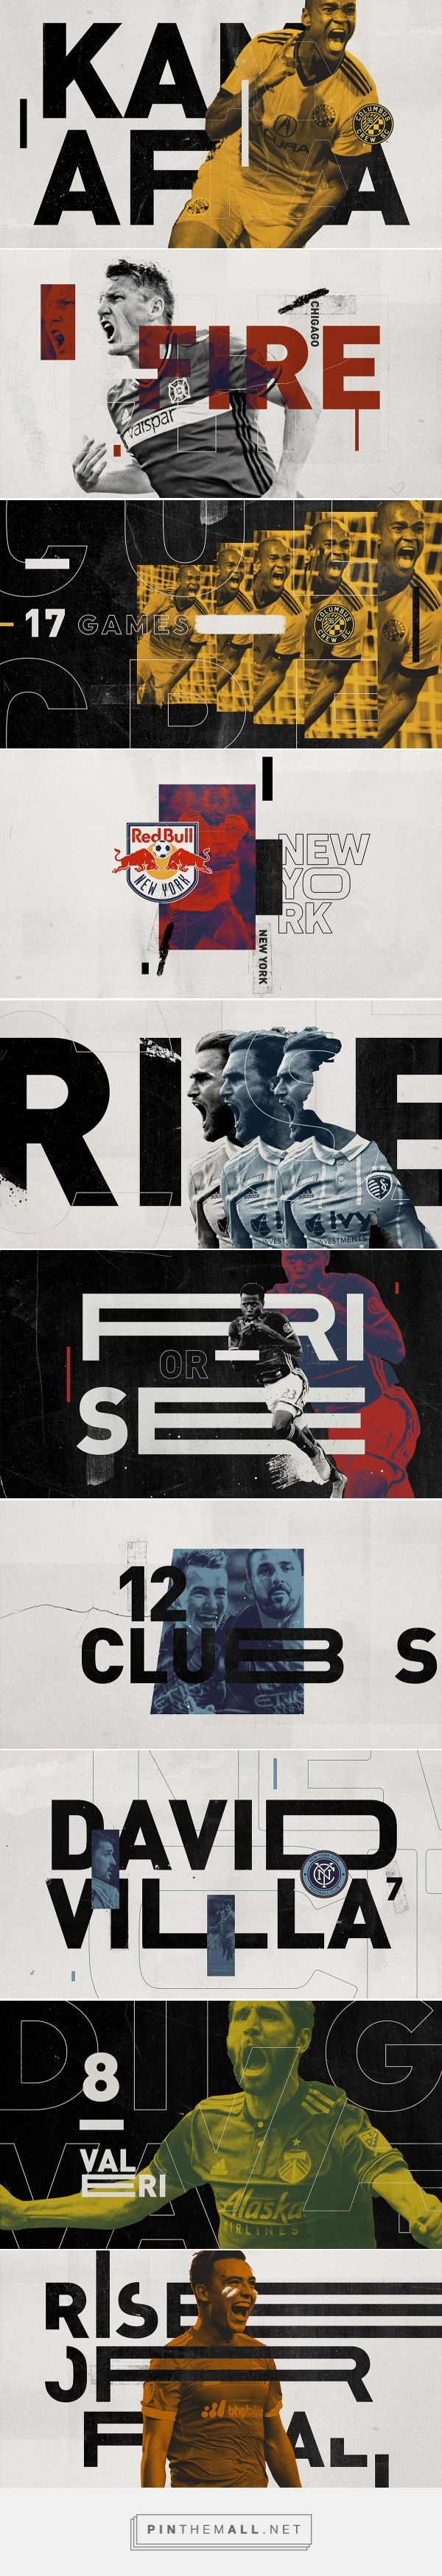 Major League Soccer on Behance - created via https://pinthemall.net